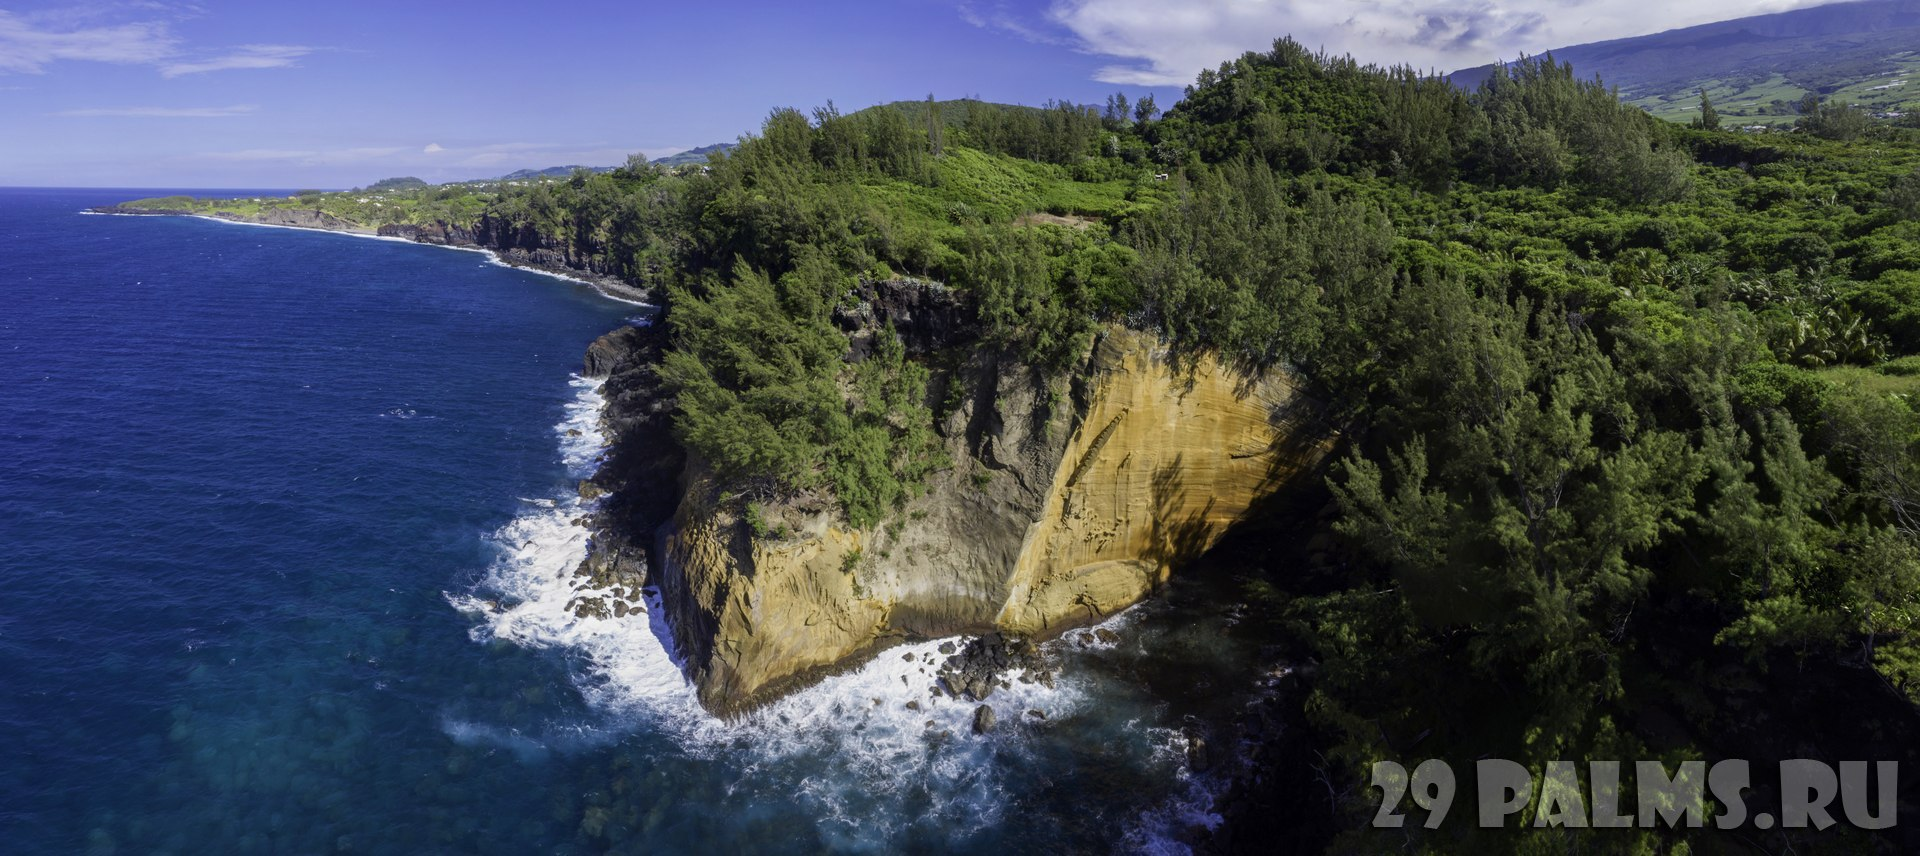 Заморские территории Франции. Остров Реюньон. Reunion Island Drone View Cap Jaune Yellow Cliff. Фото fabrice.my-lovely-planet.com - Depositphotos